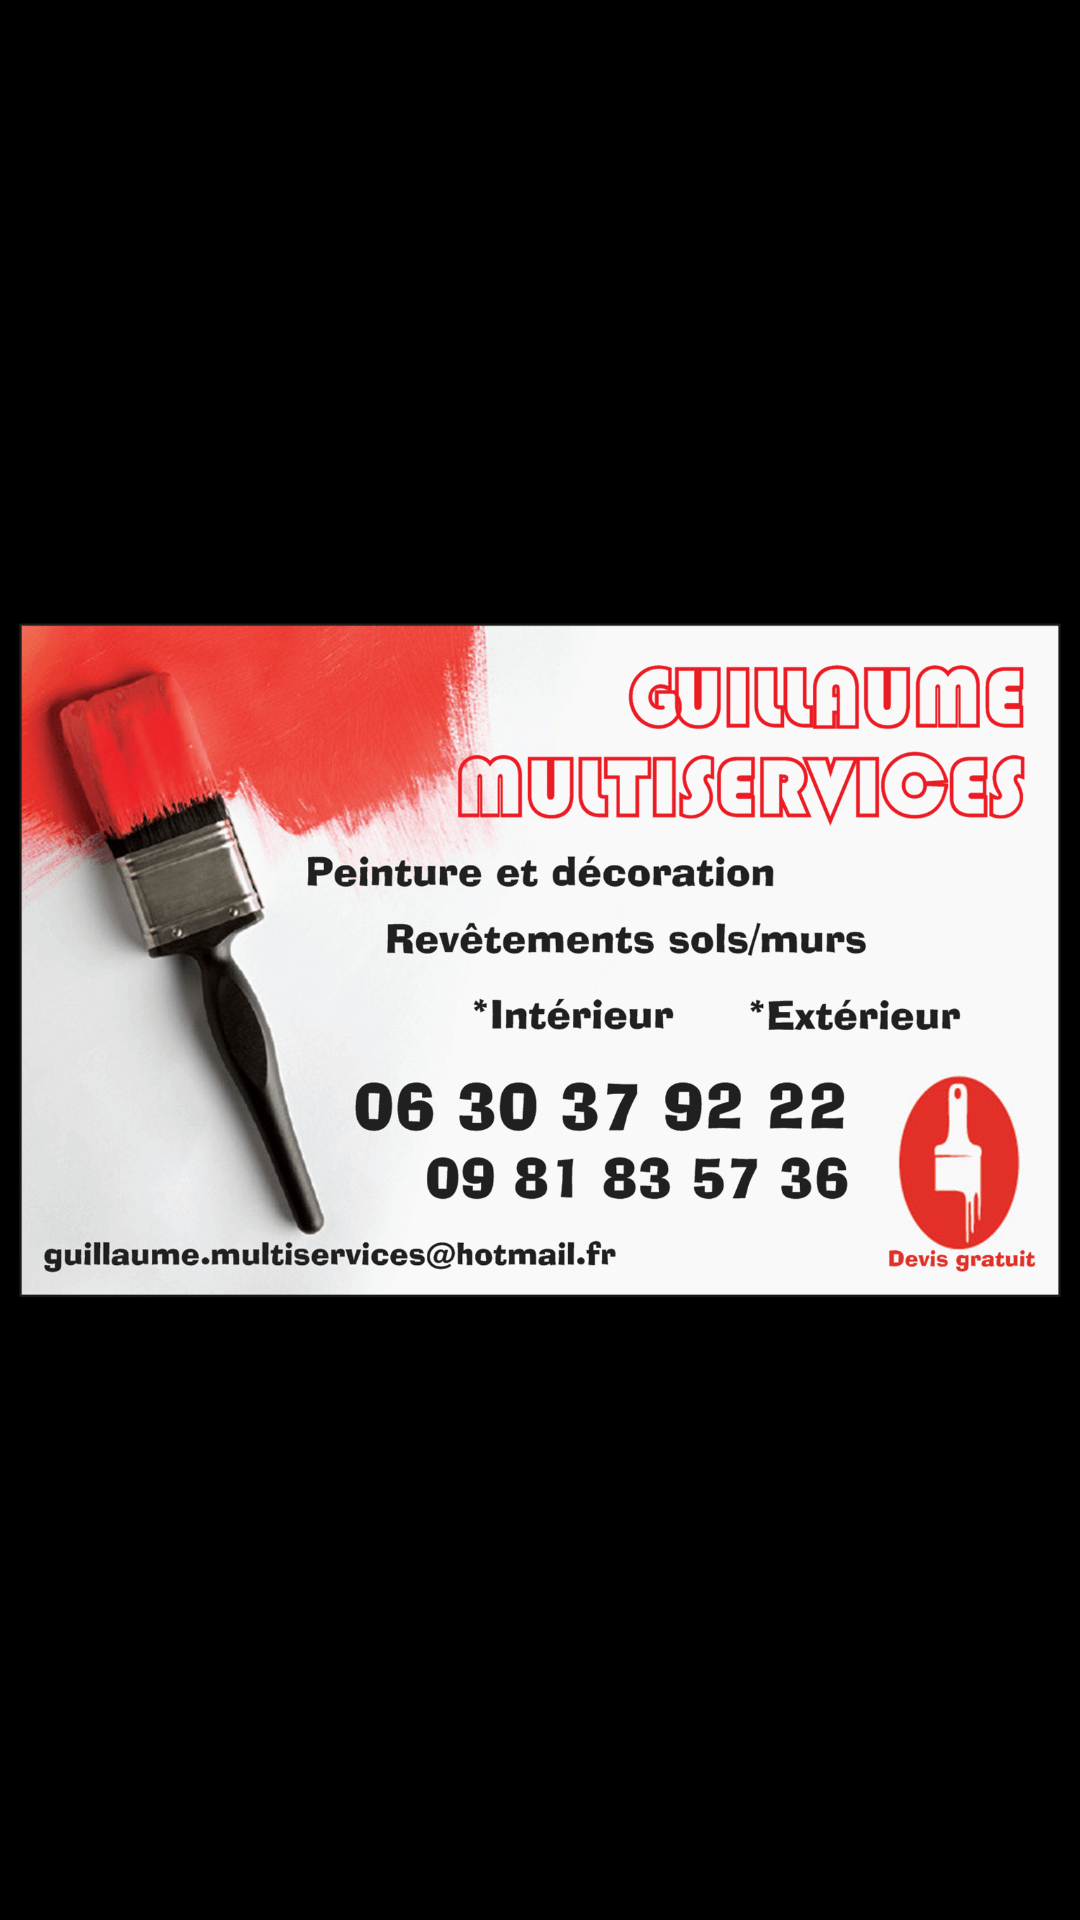 Guillaume multiservices